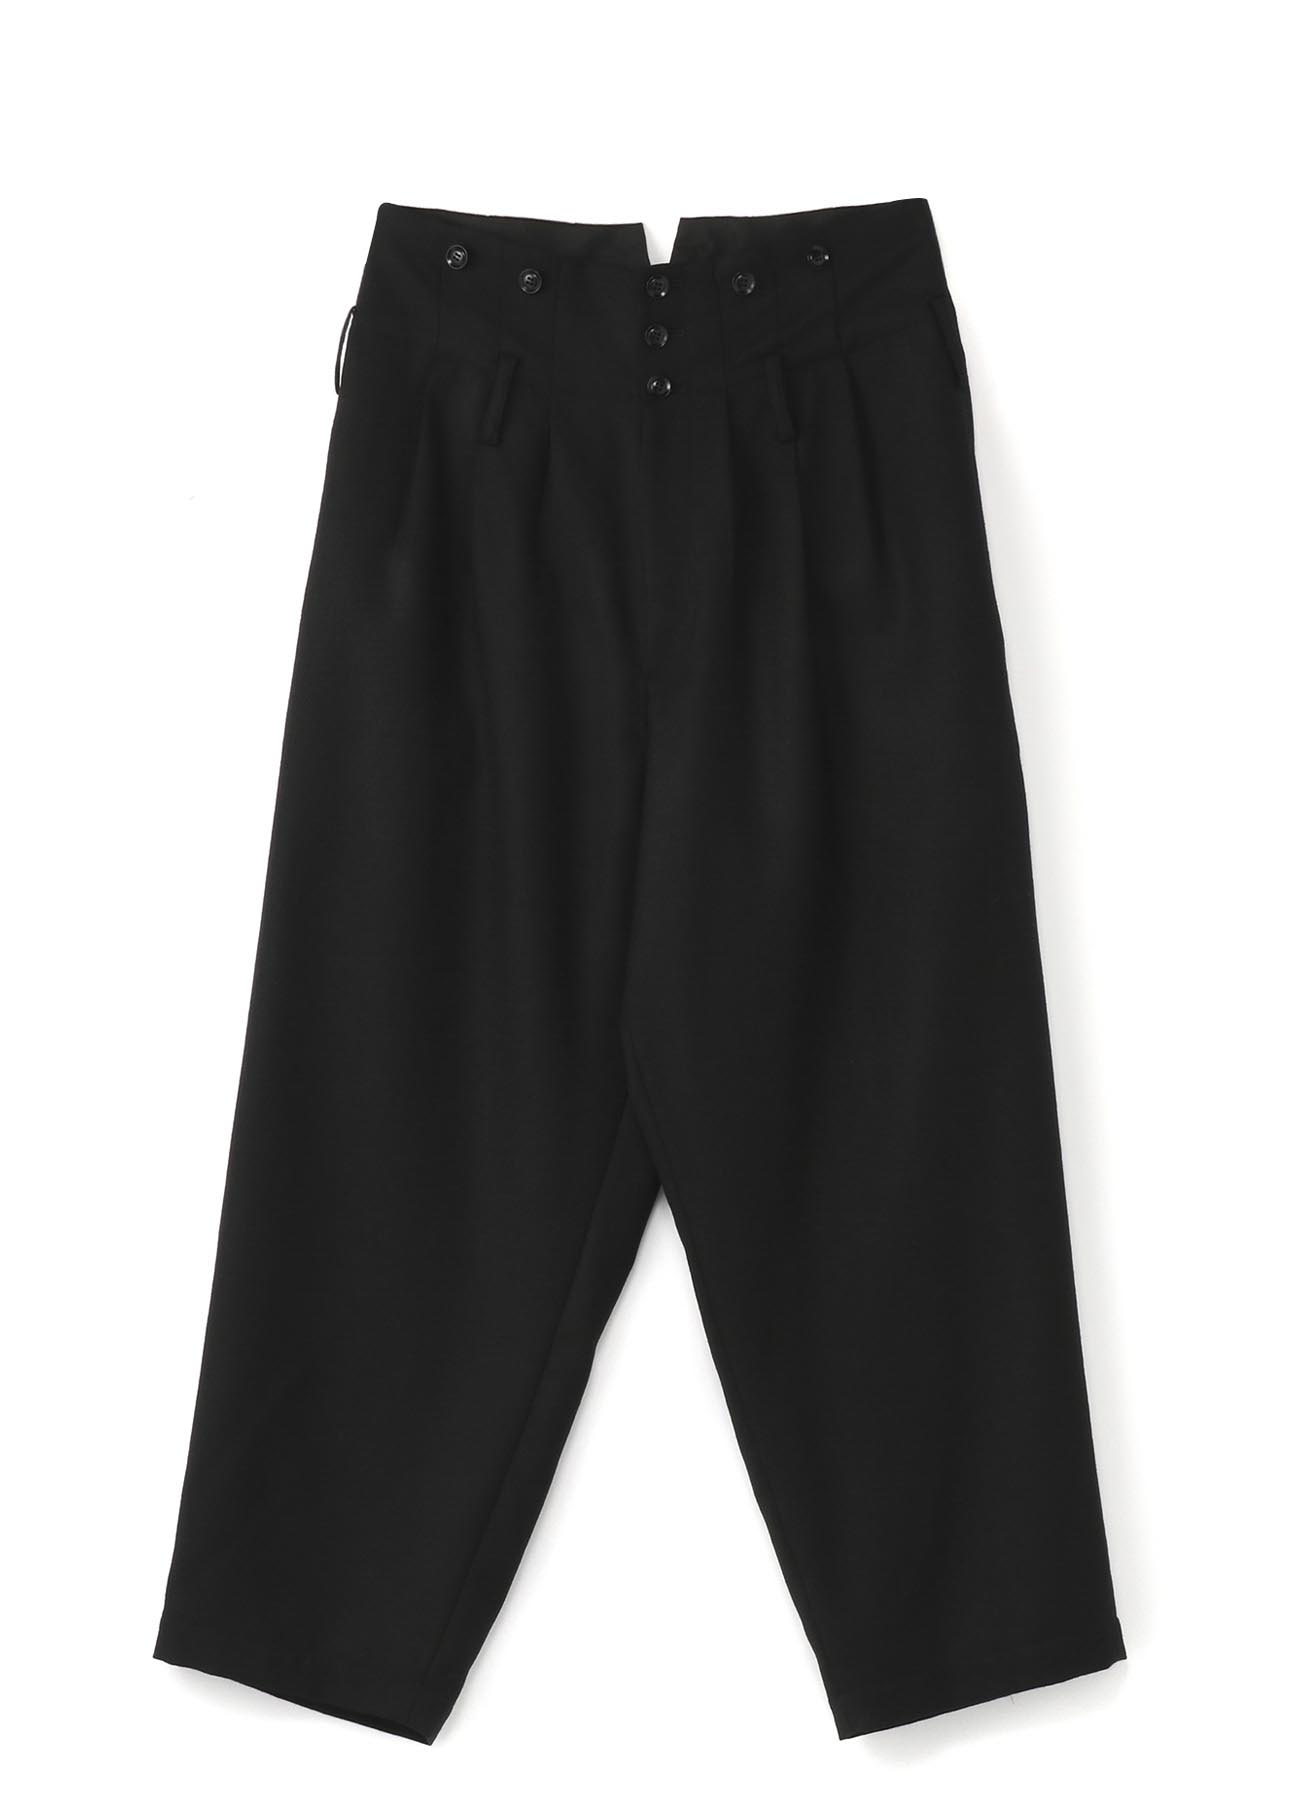 Wool Serge 3Tuck HighWaist Wide Suspenders Pants